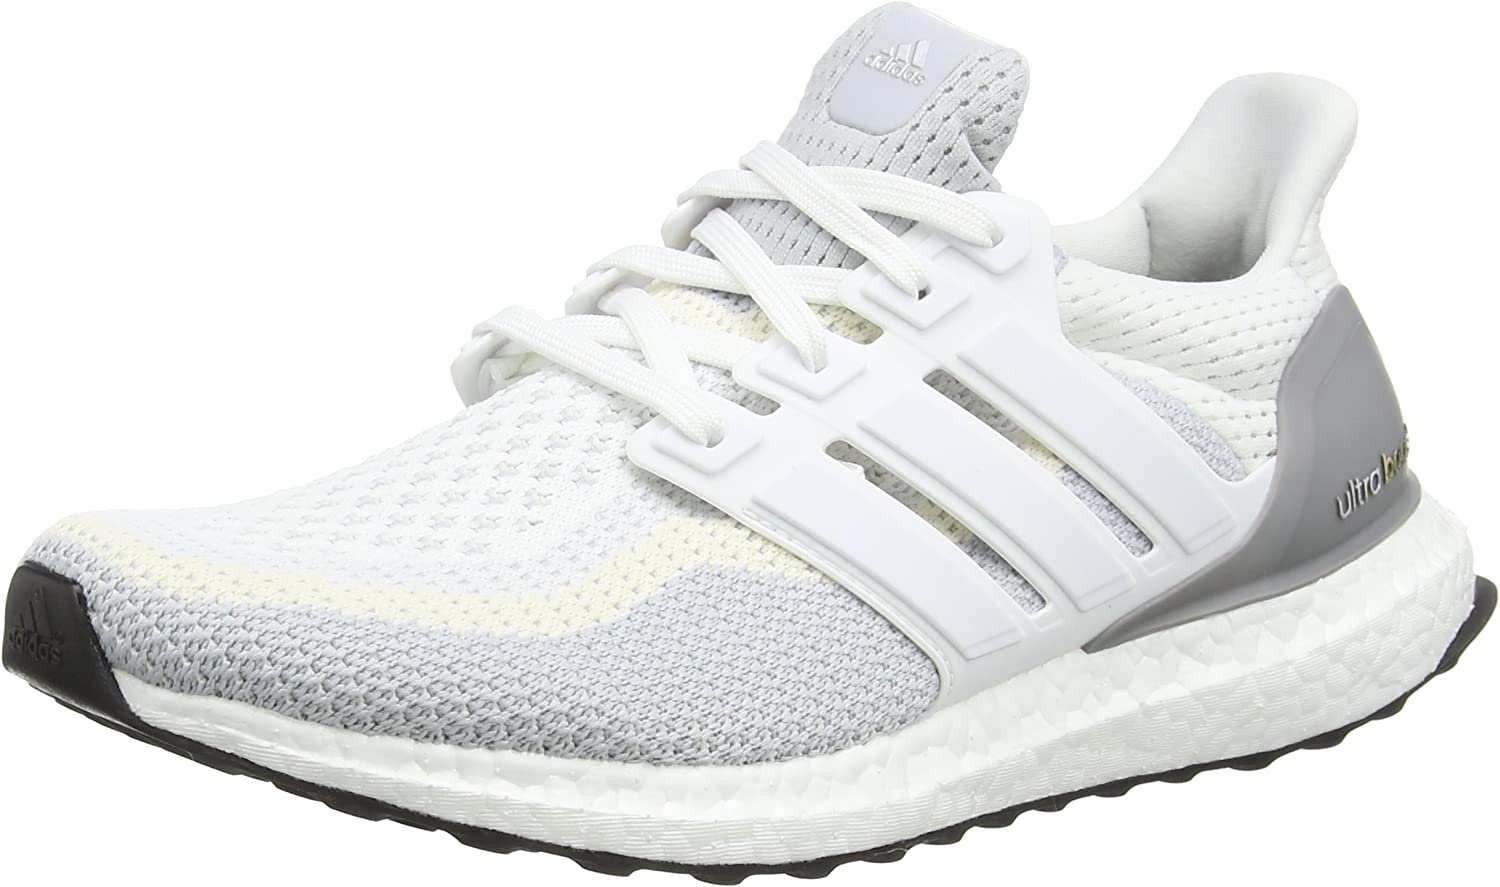 adidas Ultra Boost Running Shoes – SS16